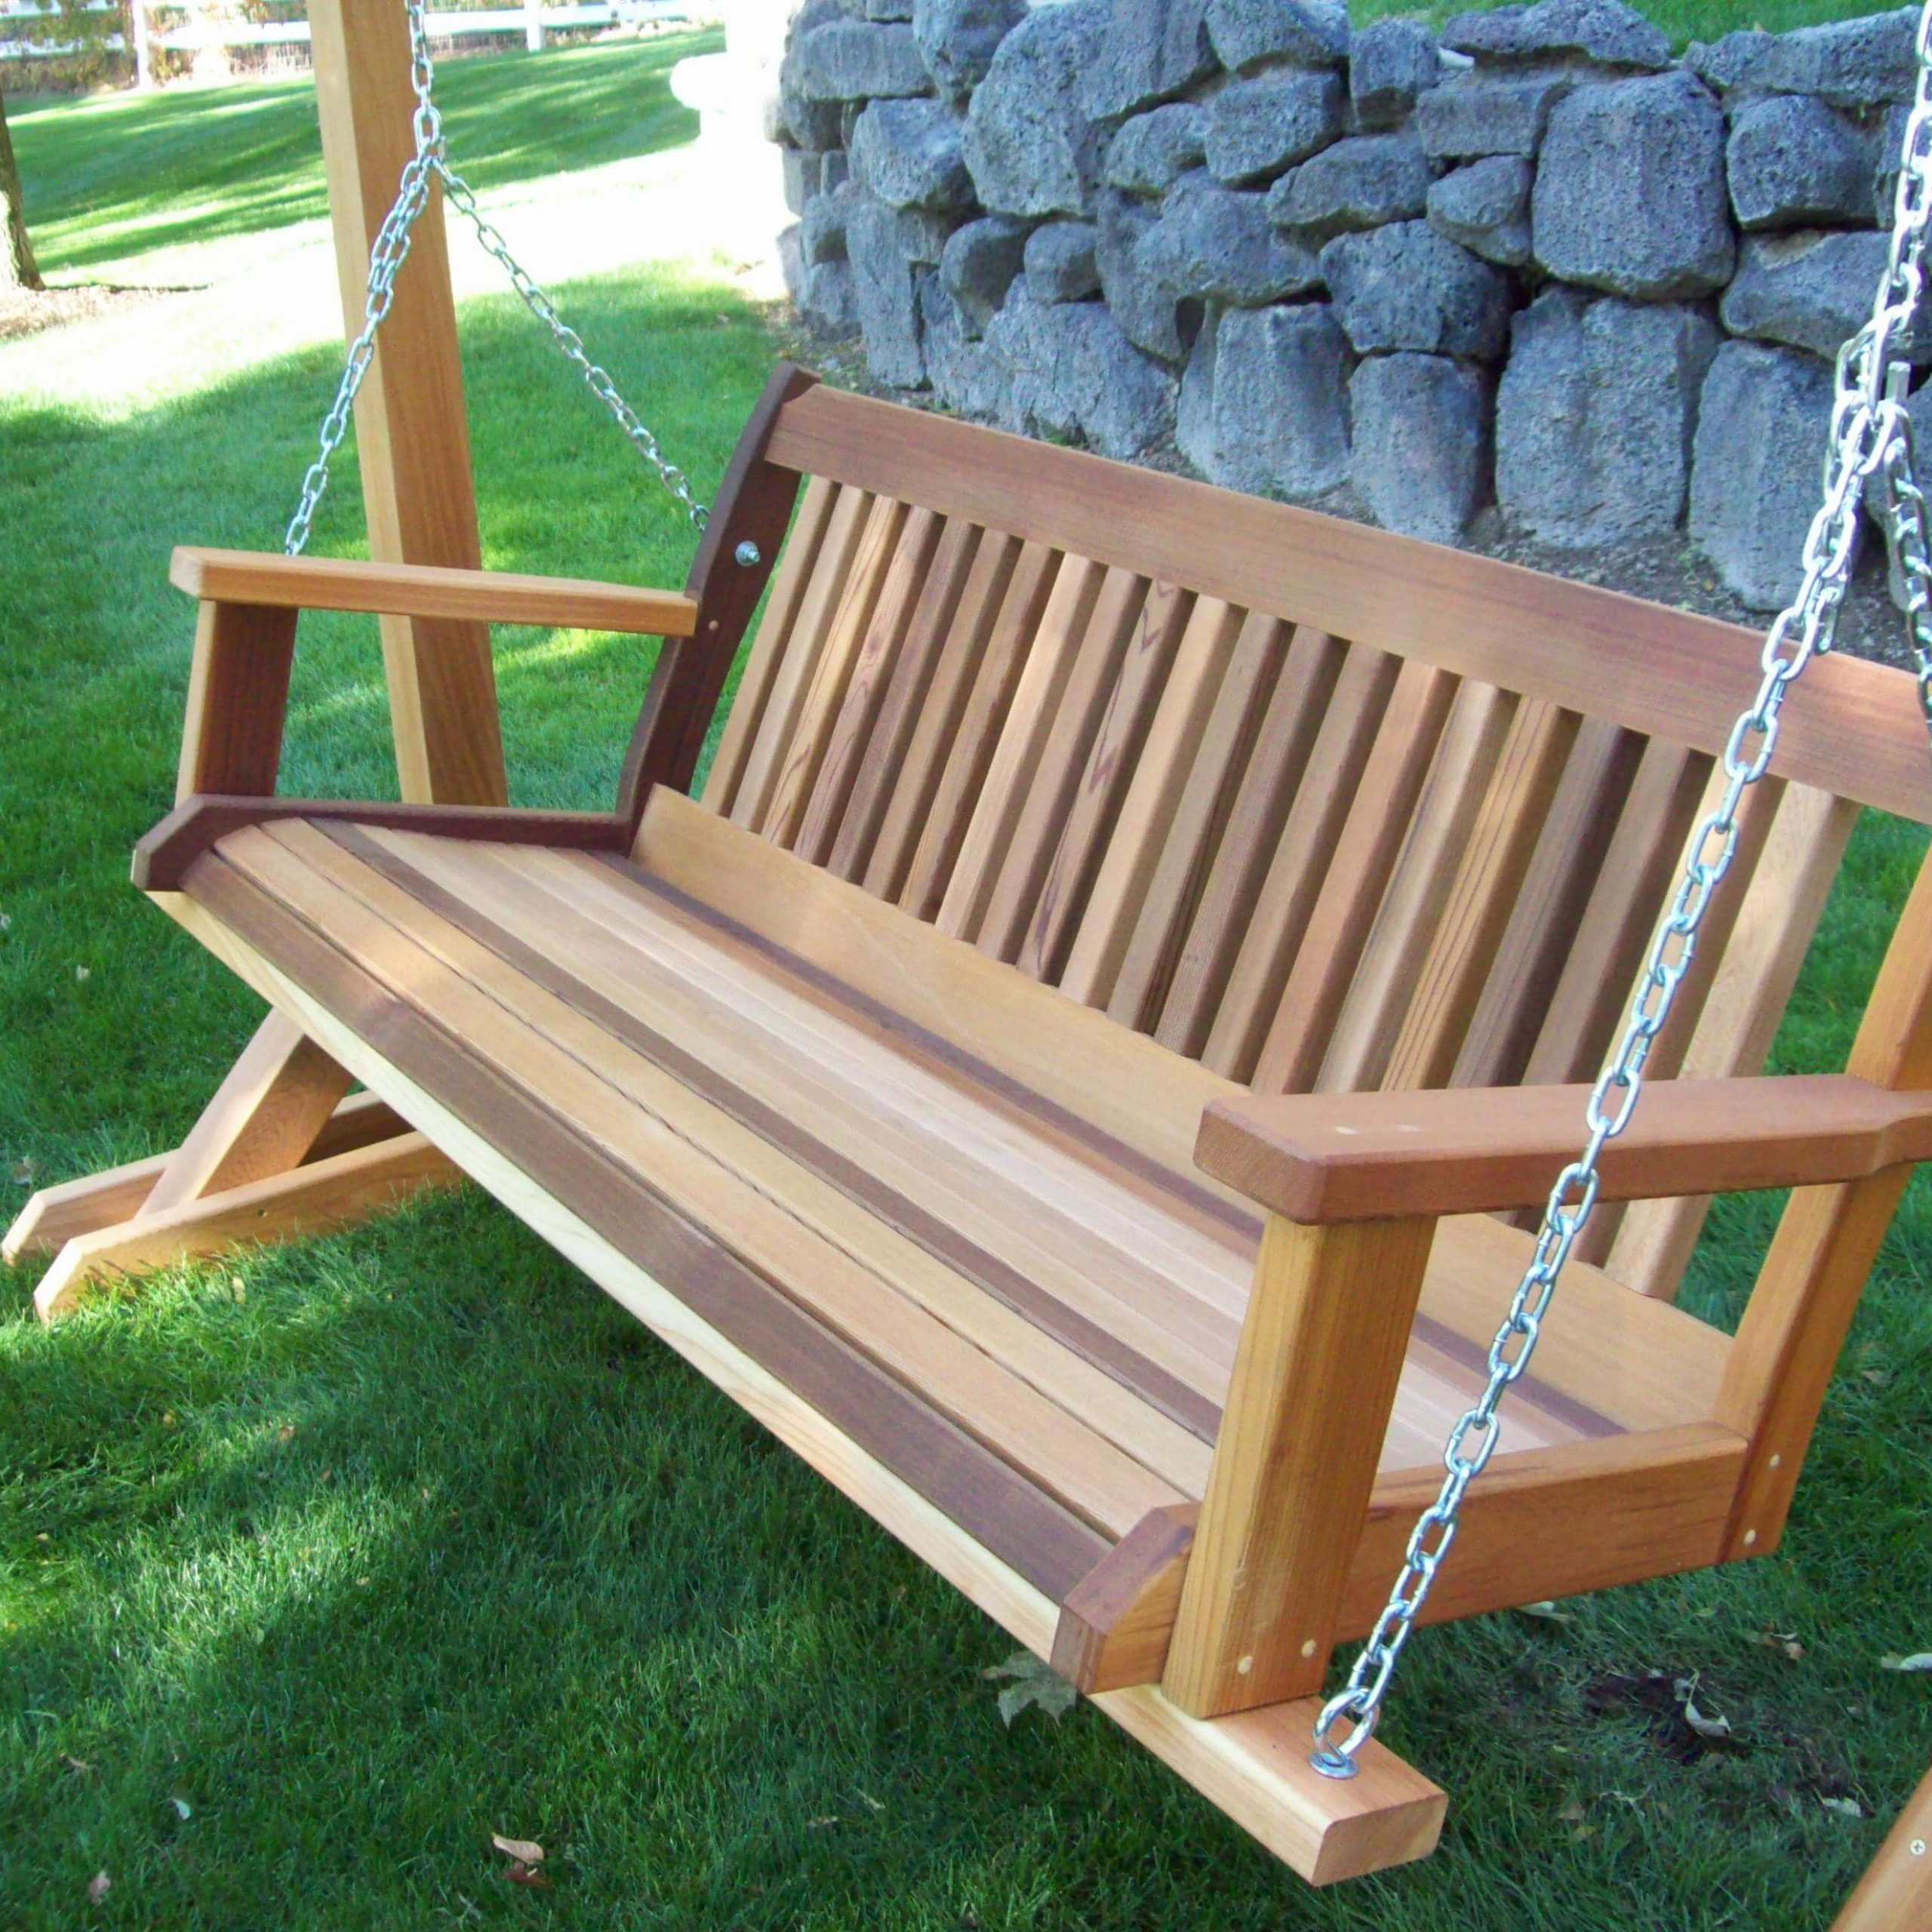 The Hammock Expert Throughout Fashionable 2 Person Natural Cedar Wood Outdoor Swings (View 14 of 25)